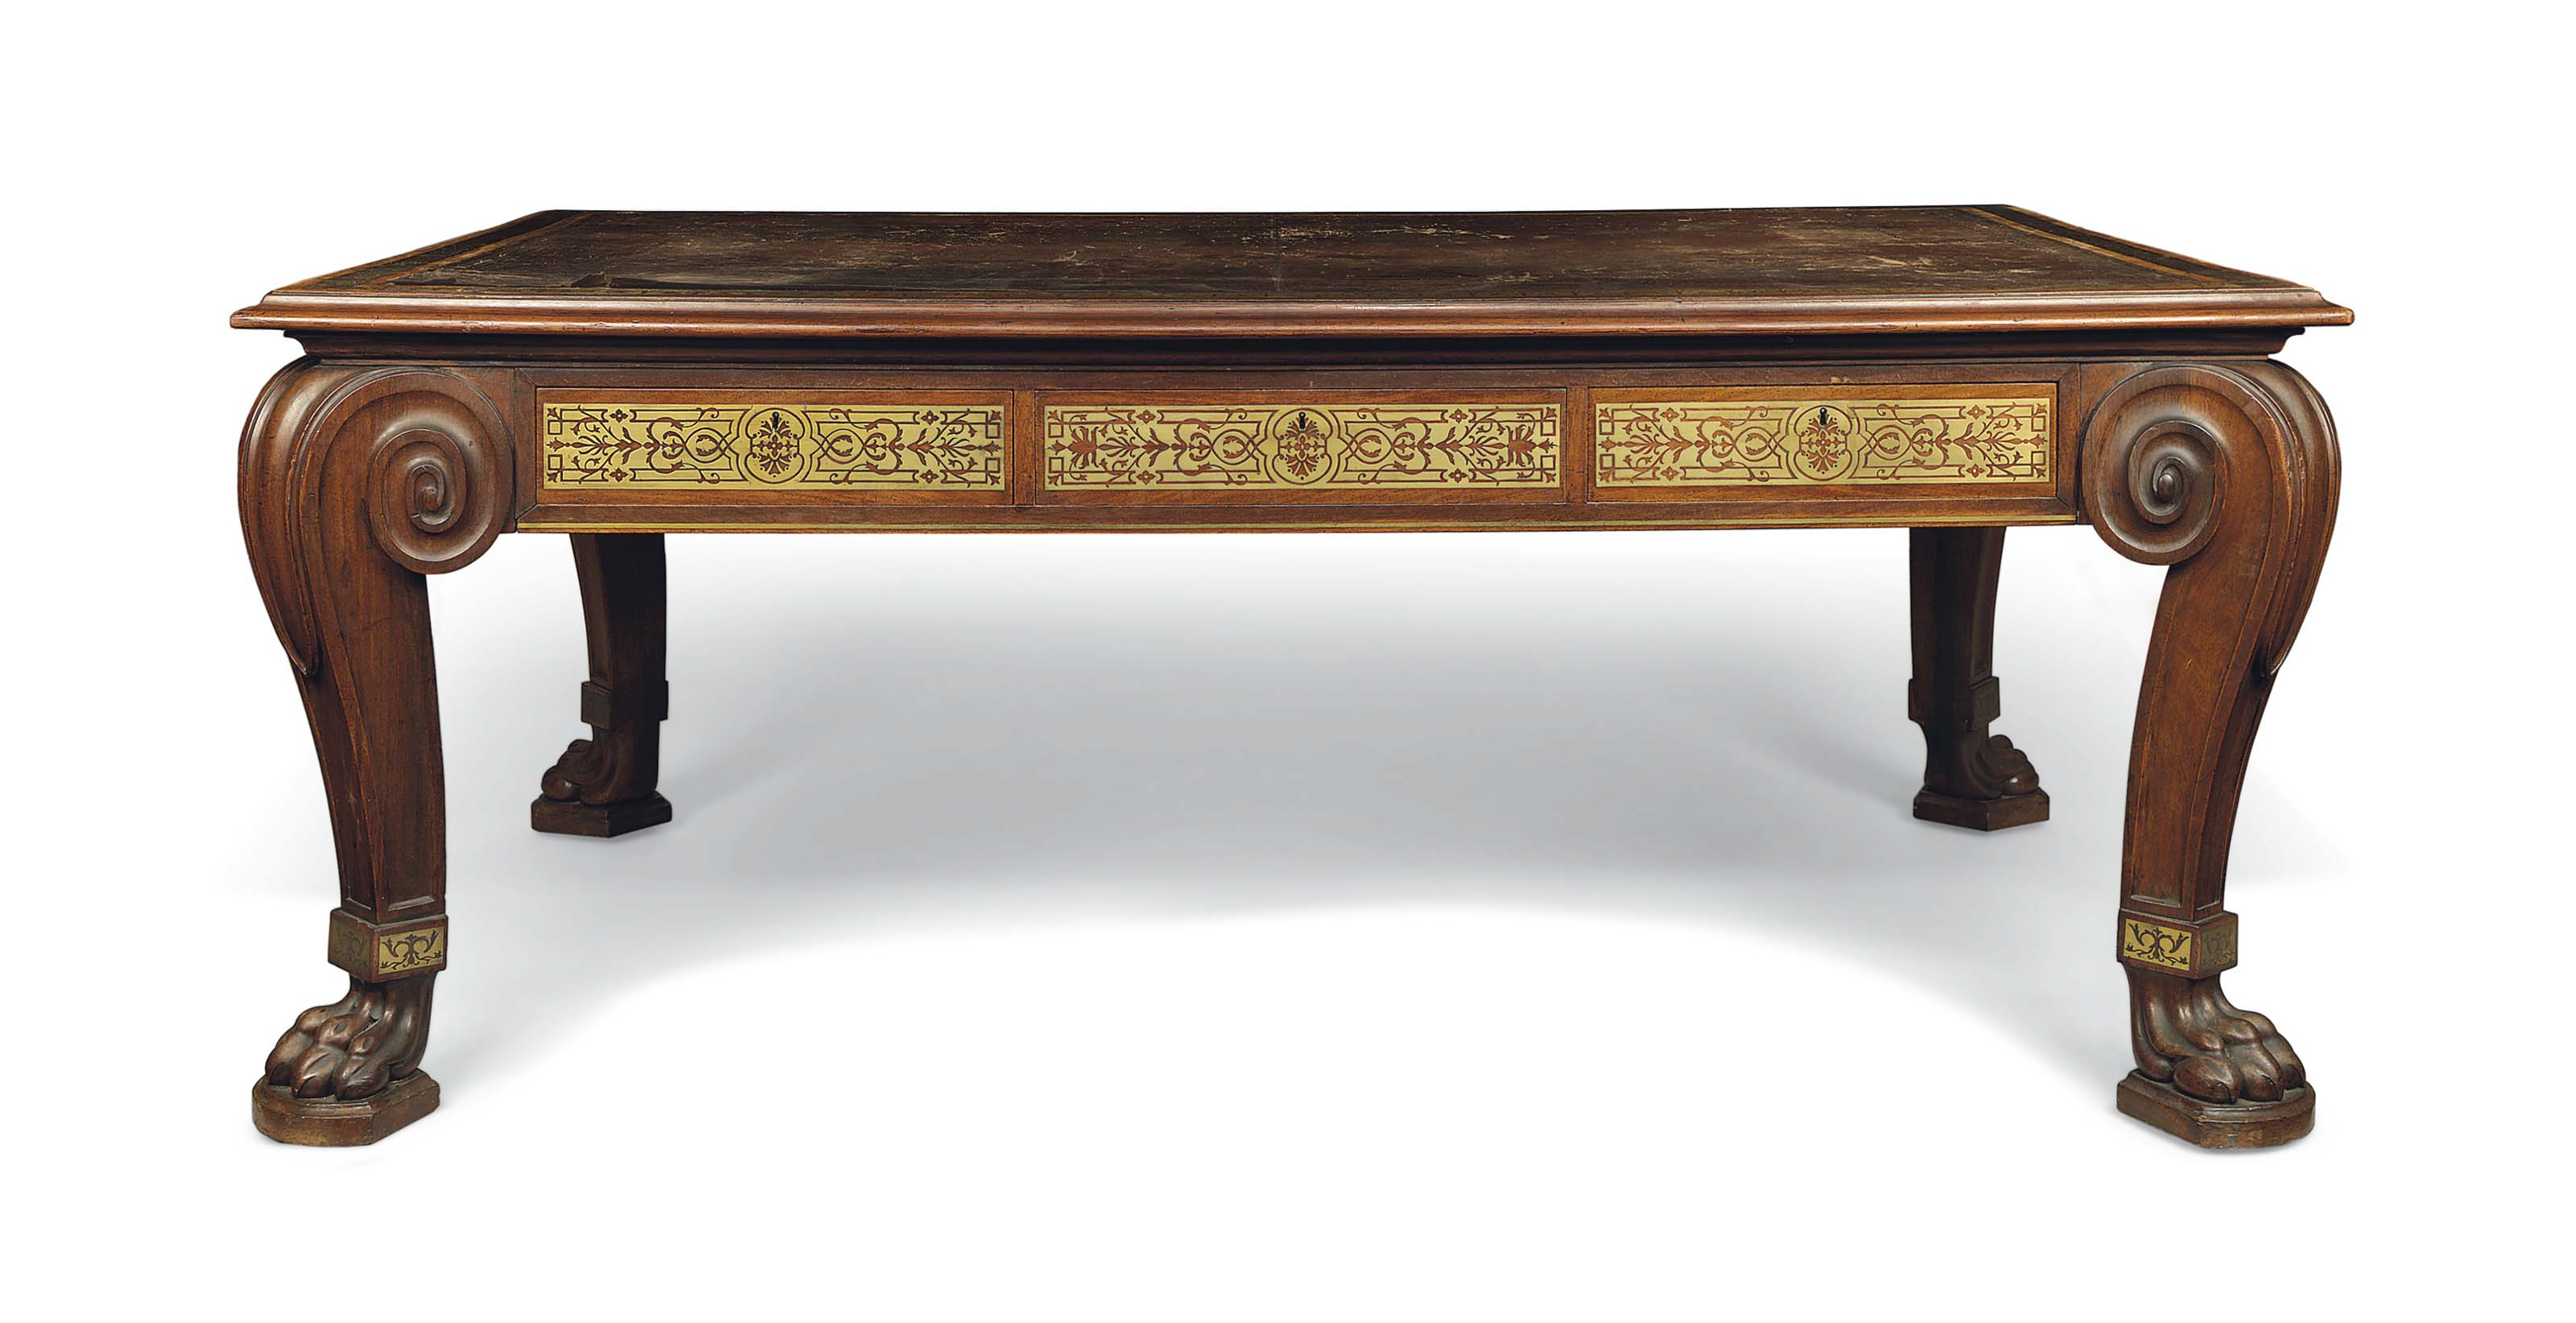 A REGENCY BRASS-INLAID ROSEWOOD LIBRARY TABLE